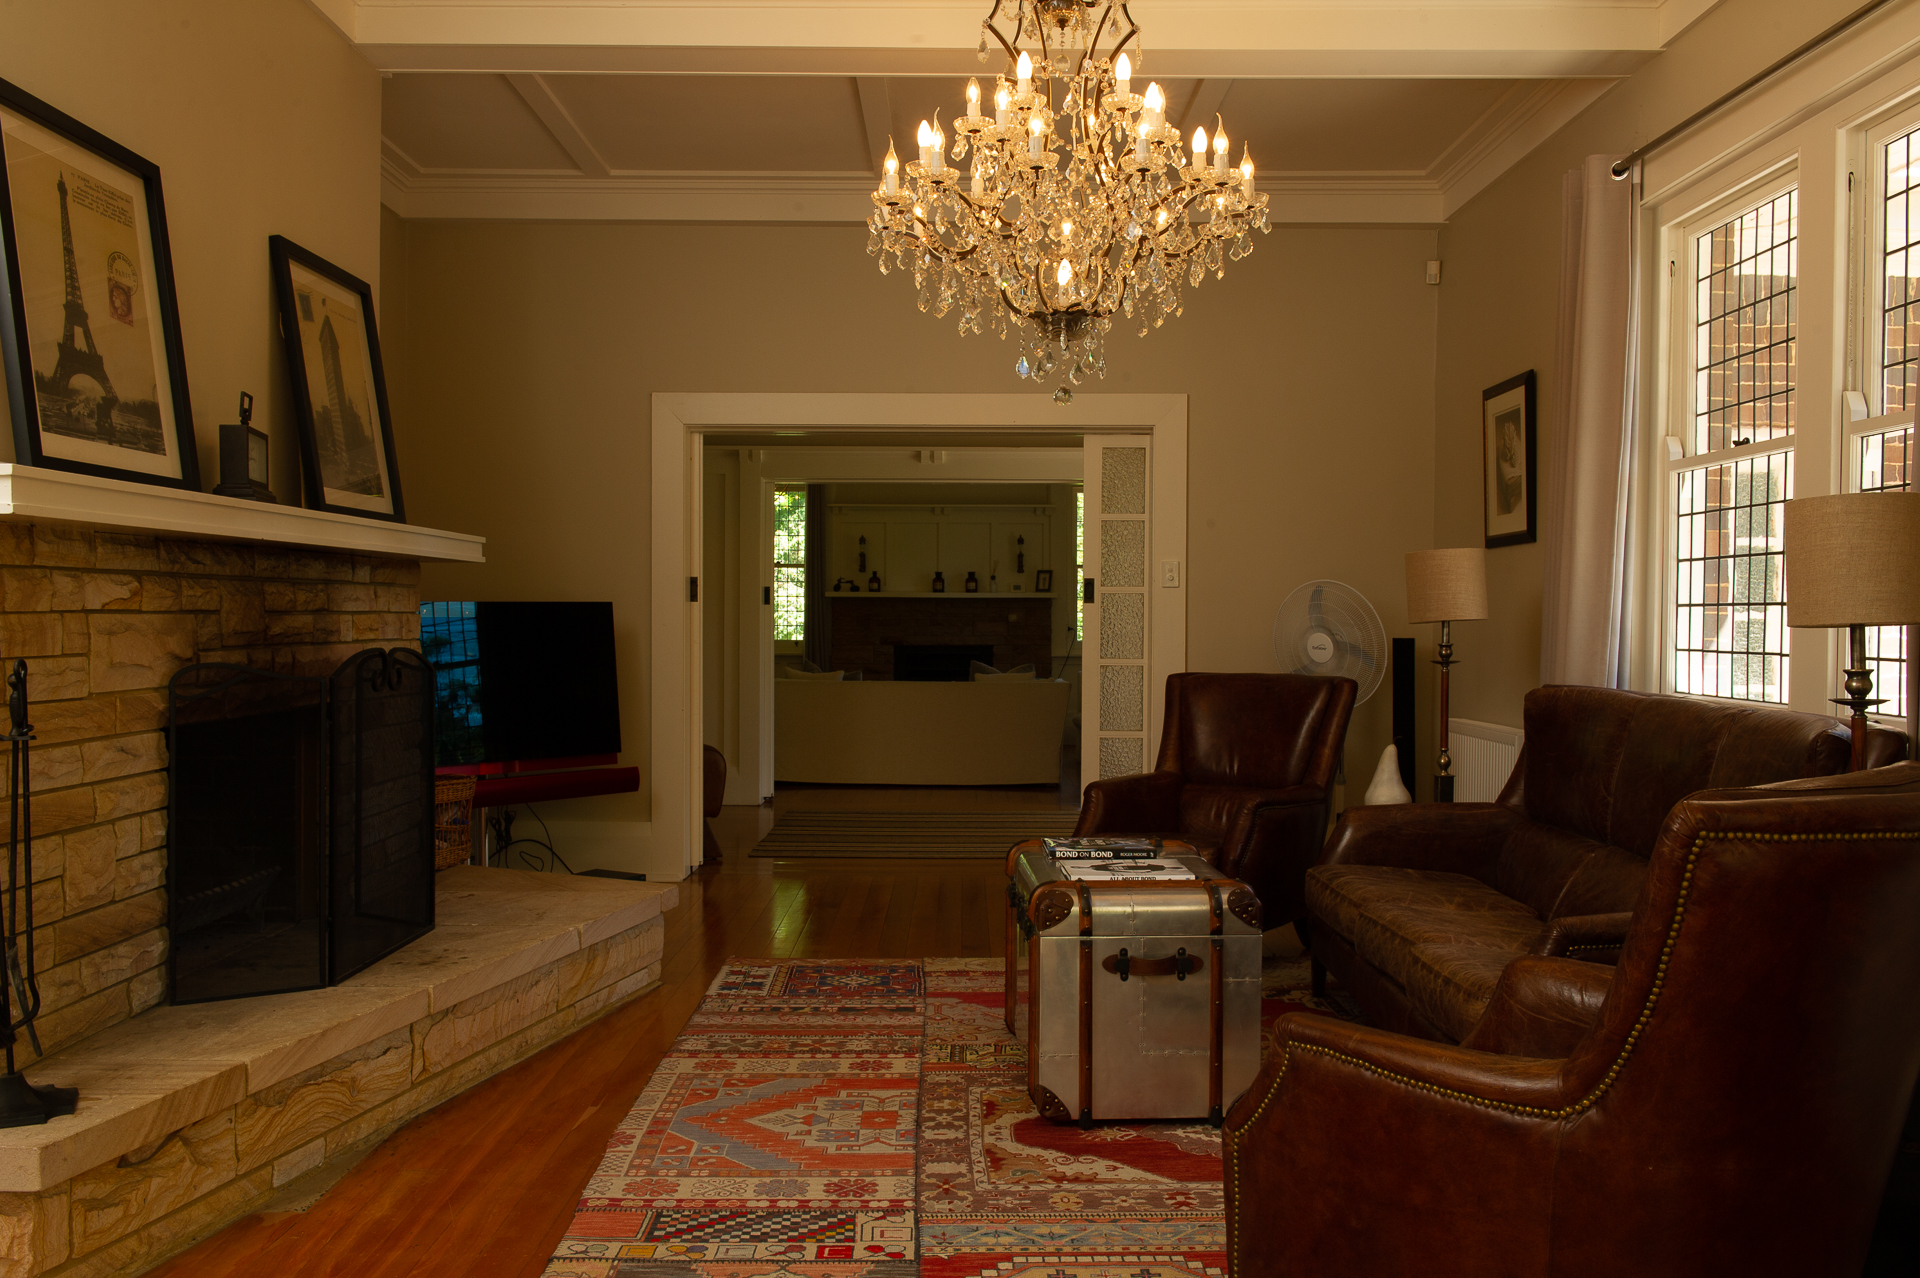 Photo of living room taken by owner